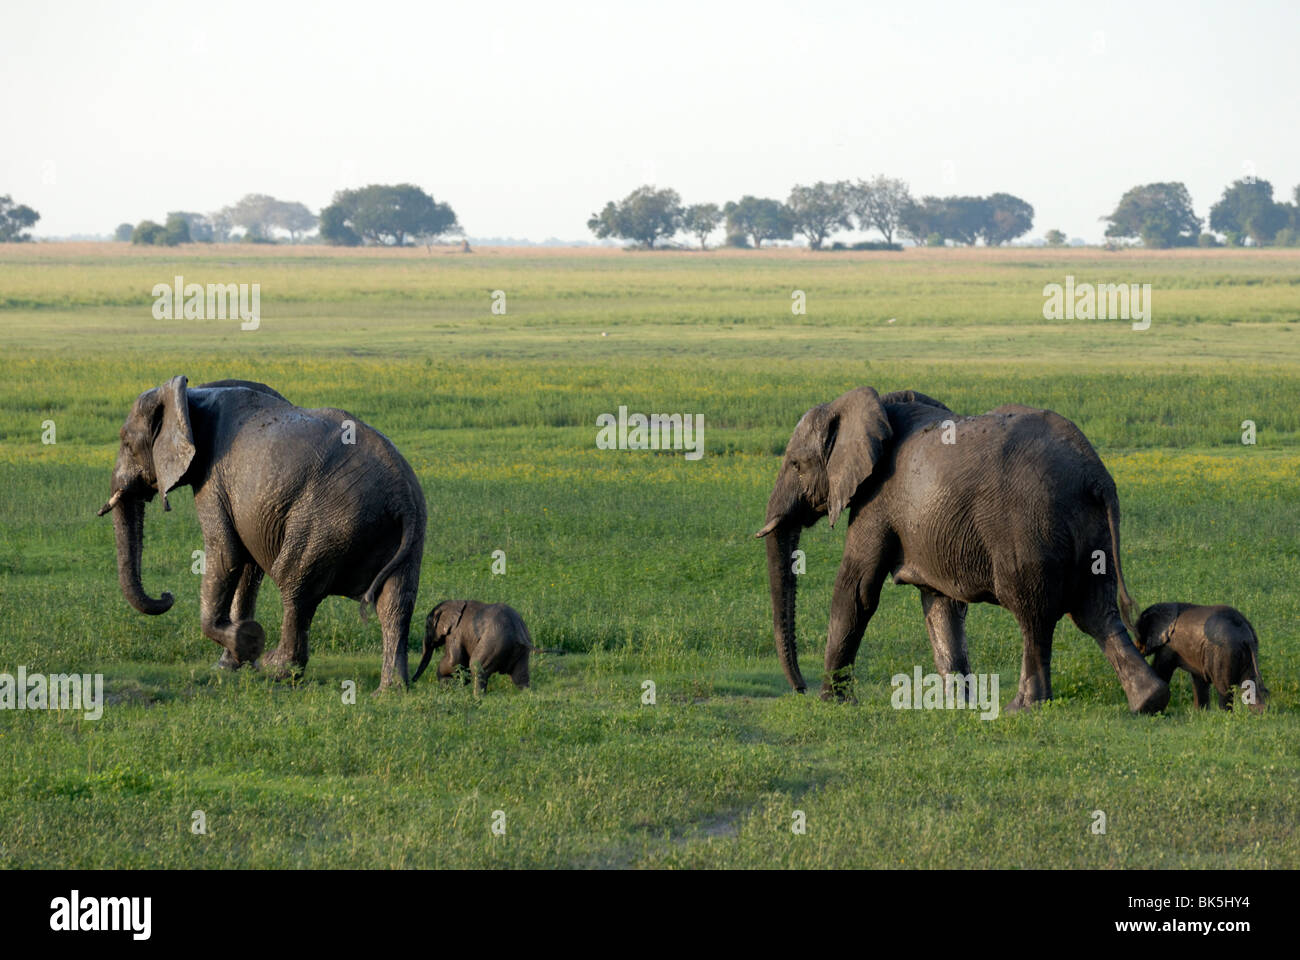 Elephants and their young, Chobe National Park, Botswana, Africa - Stock Image